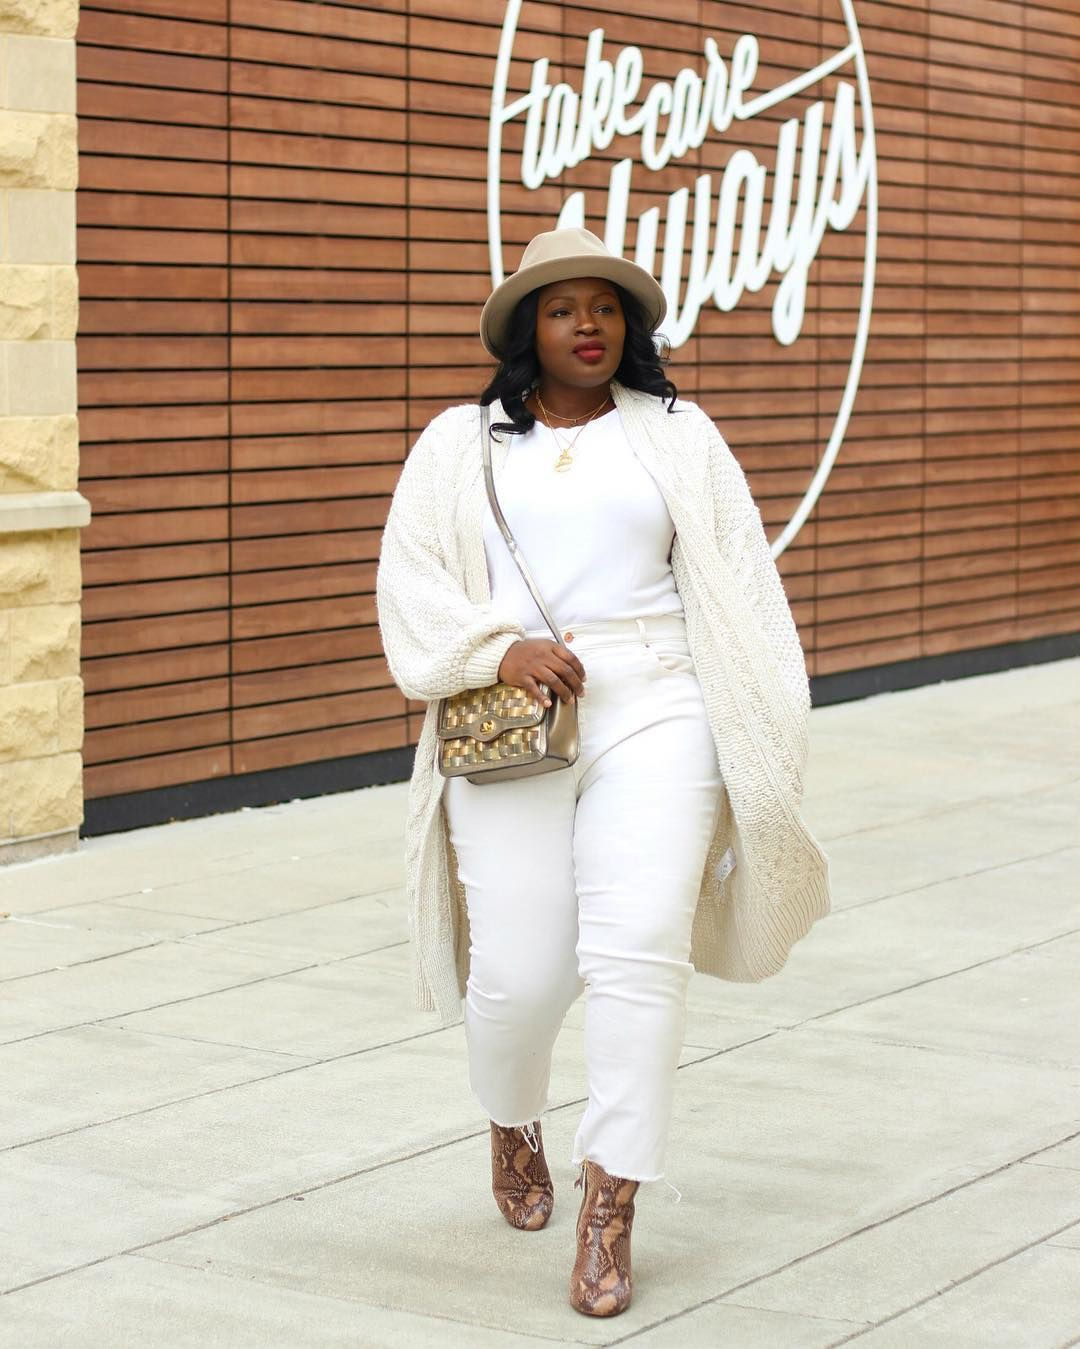 Beige and white outfit ideas with trousers, jacket, jeans